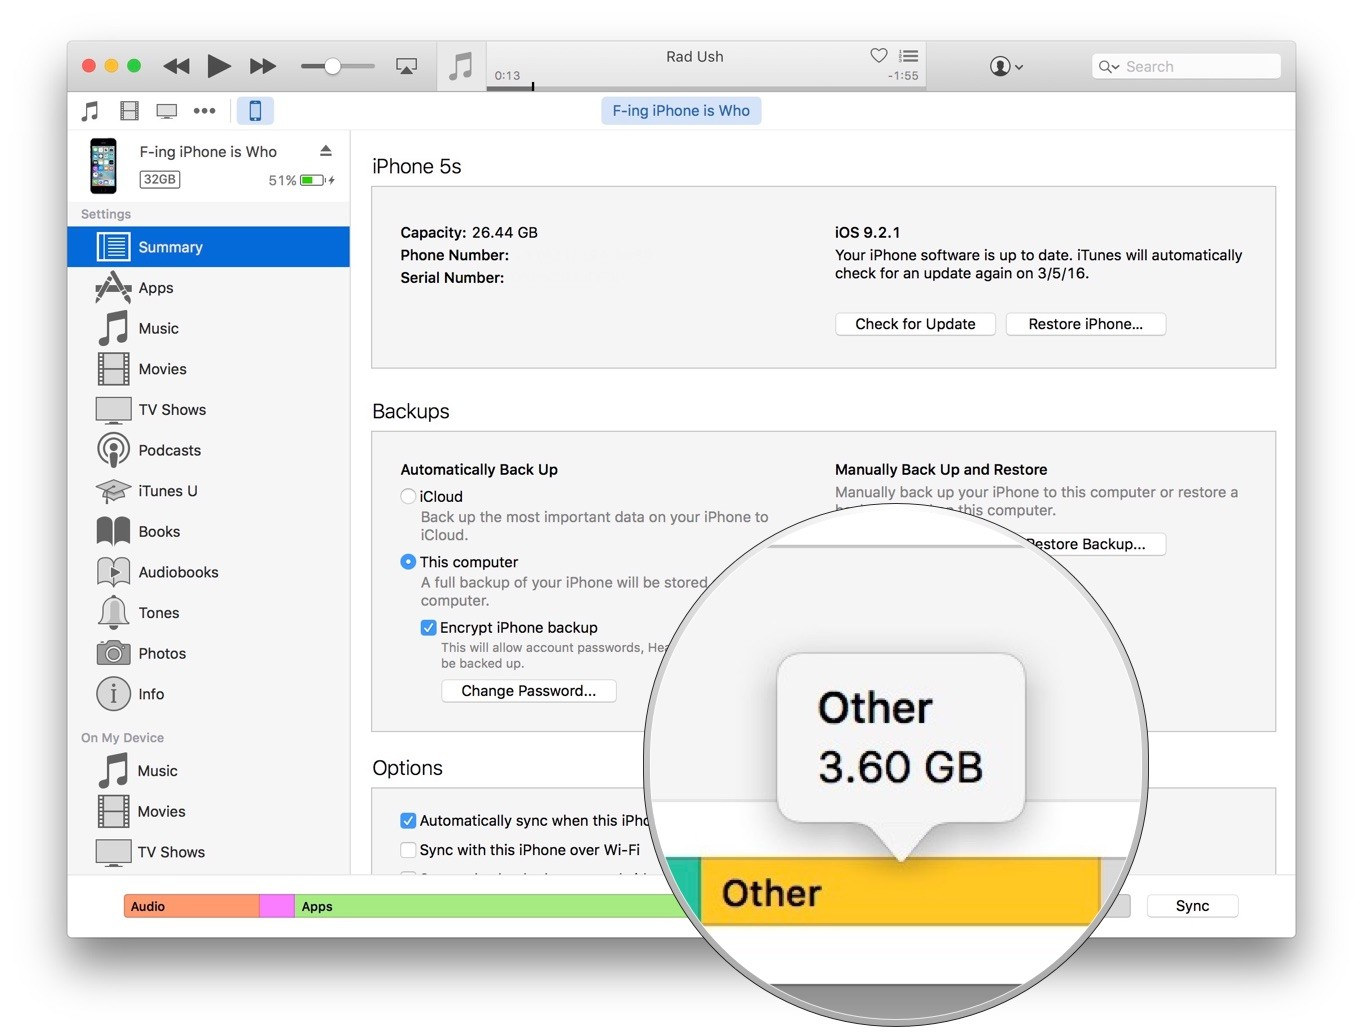 How to reduce other storage on macbook air